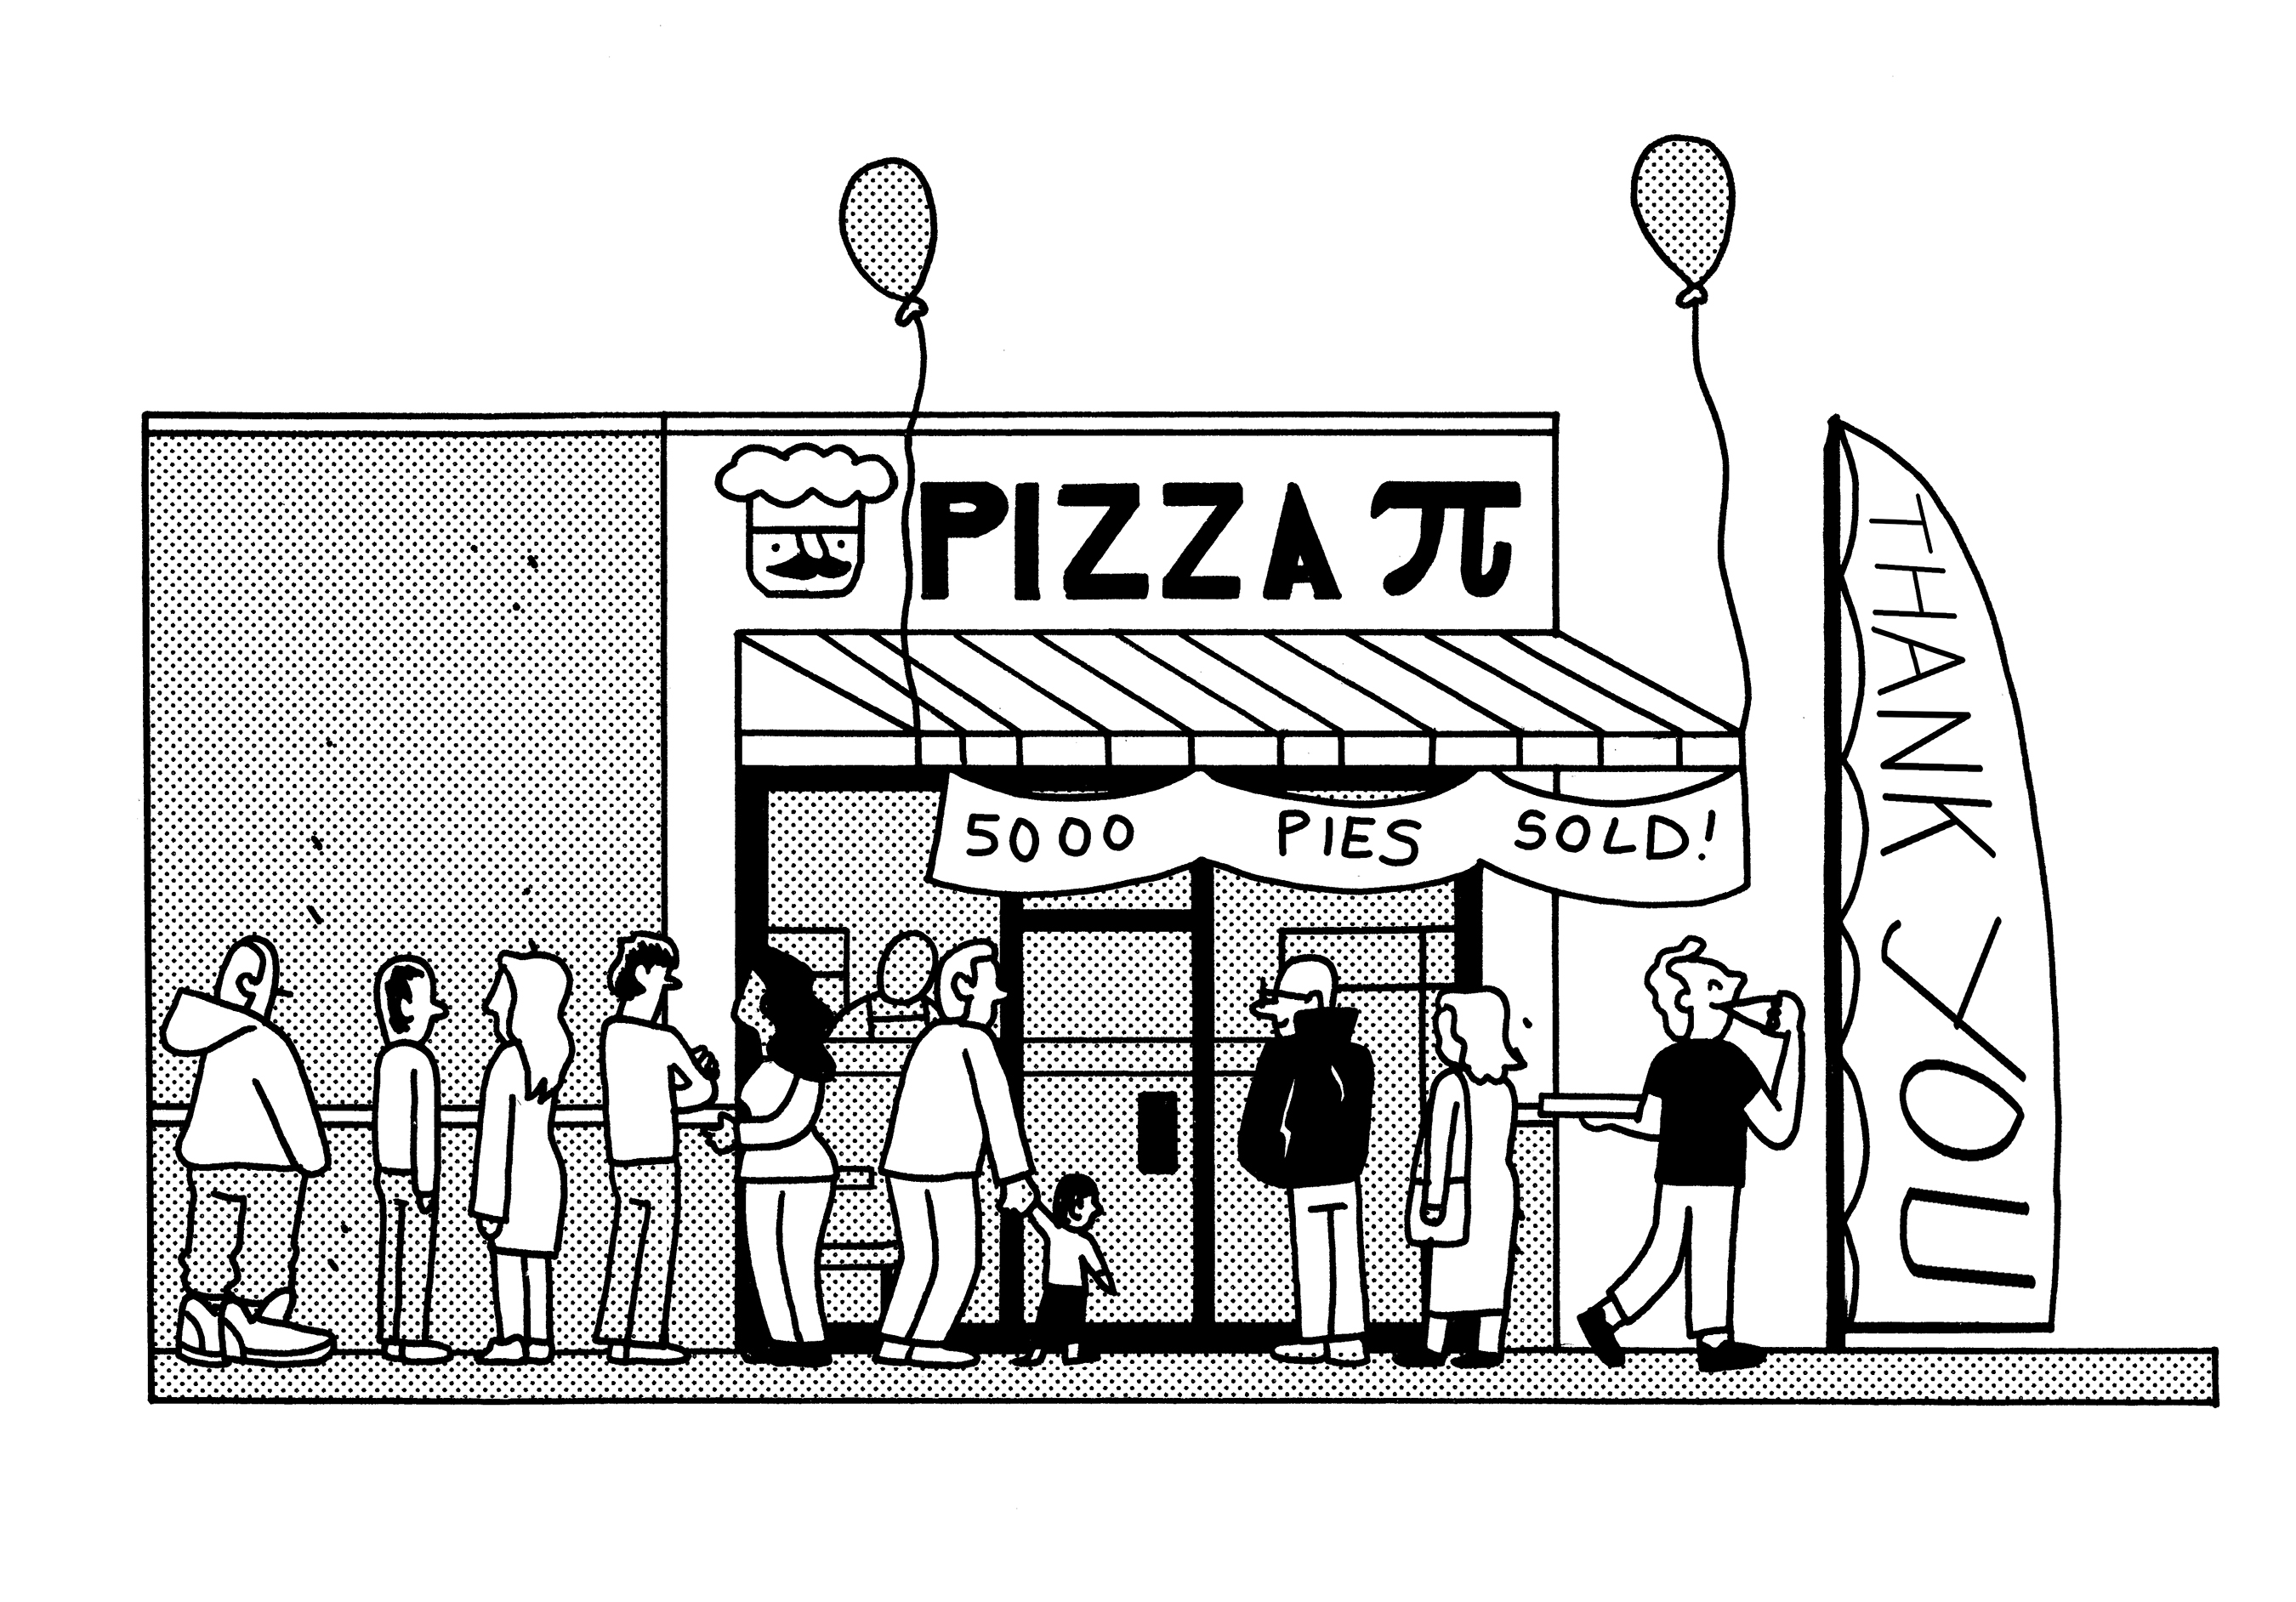 illustration of pizza restaurant with customers lined up in front.